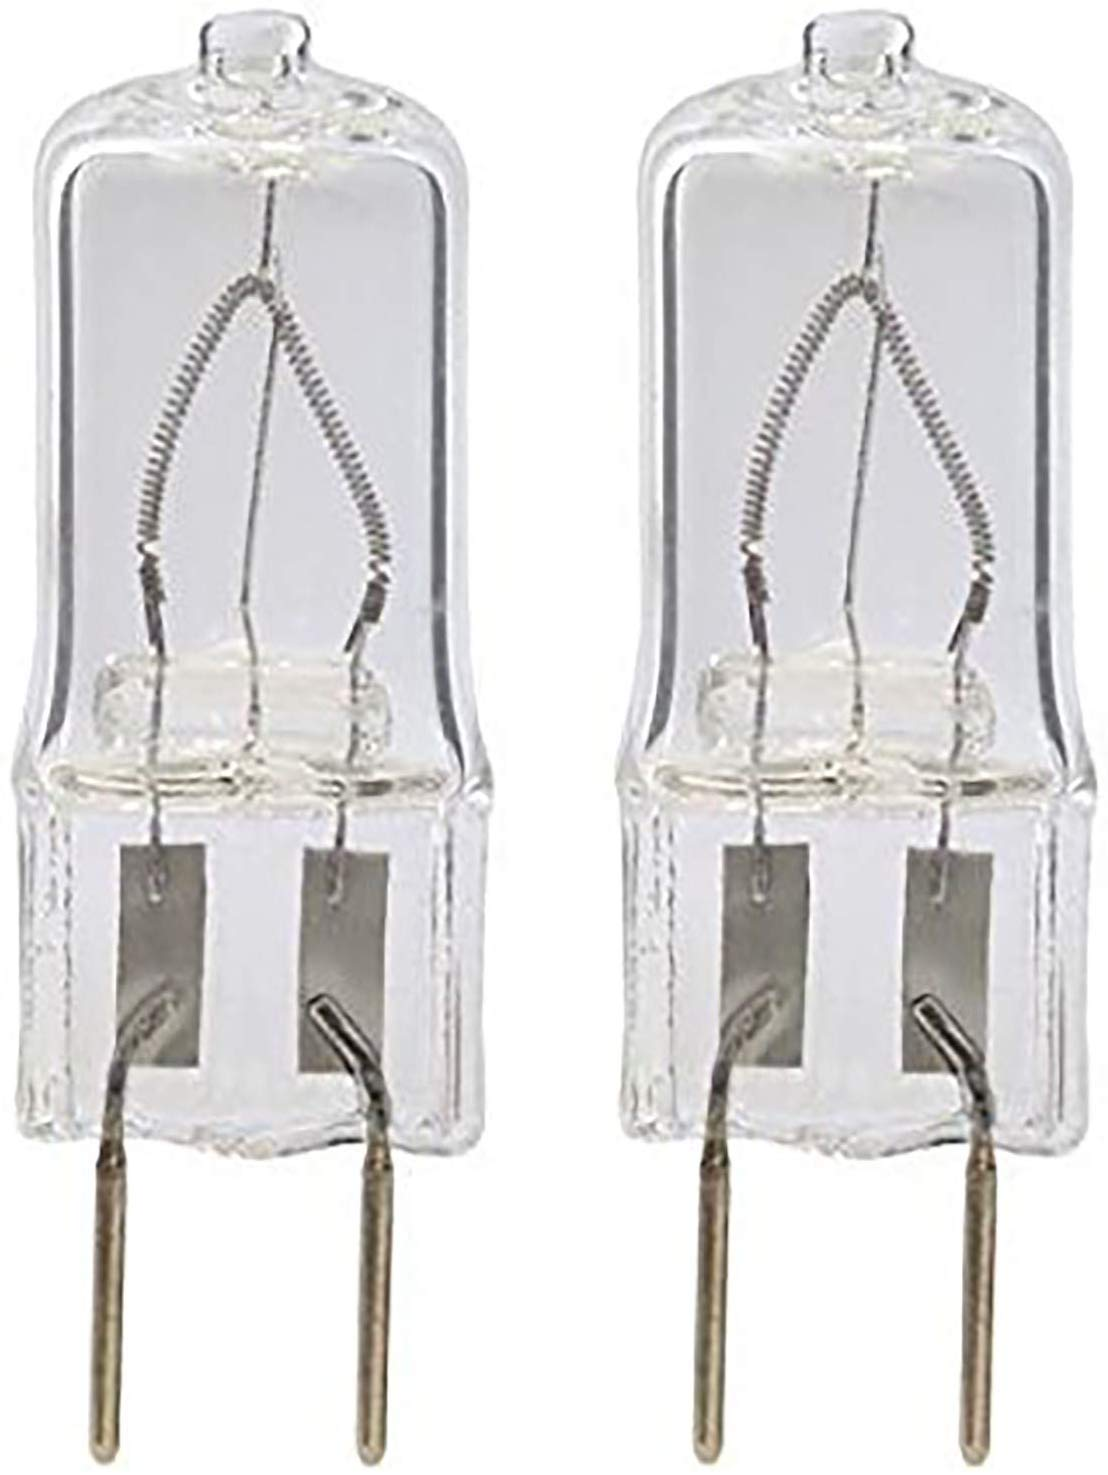 2pack - WB08X10057 50W Halogen Lamp Bulb 120W Replacement for GE Microwave